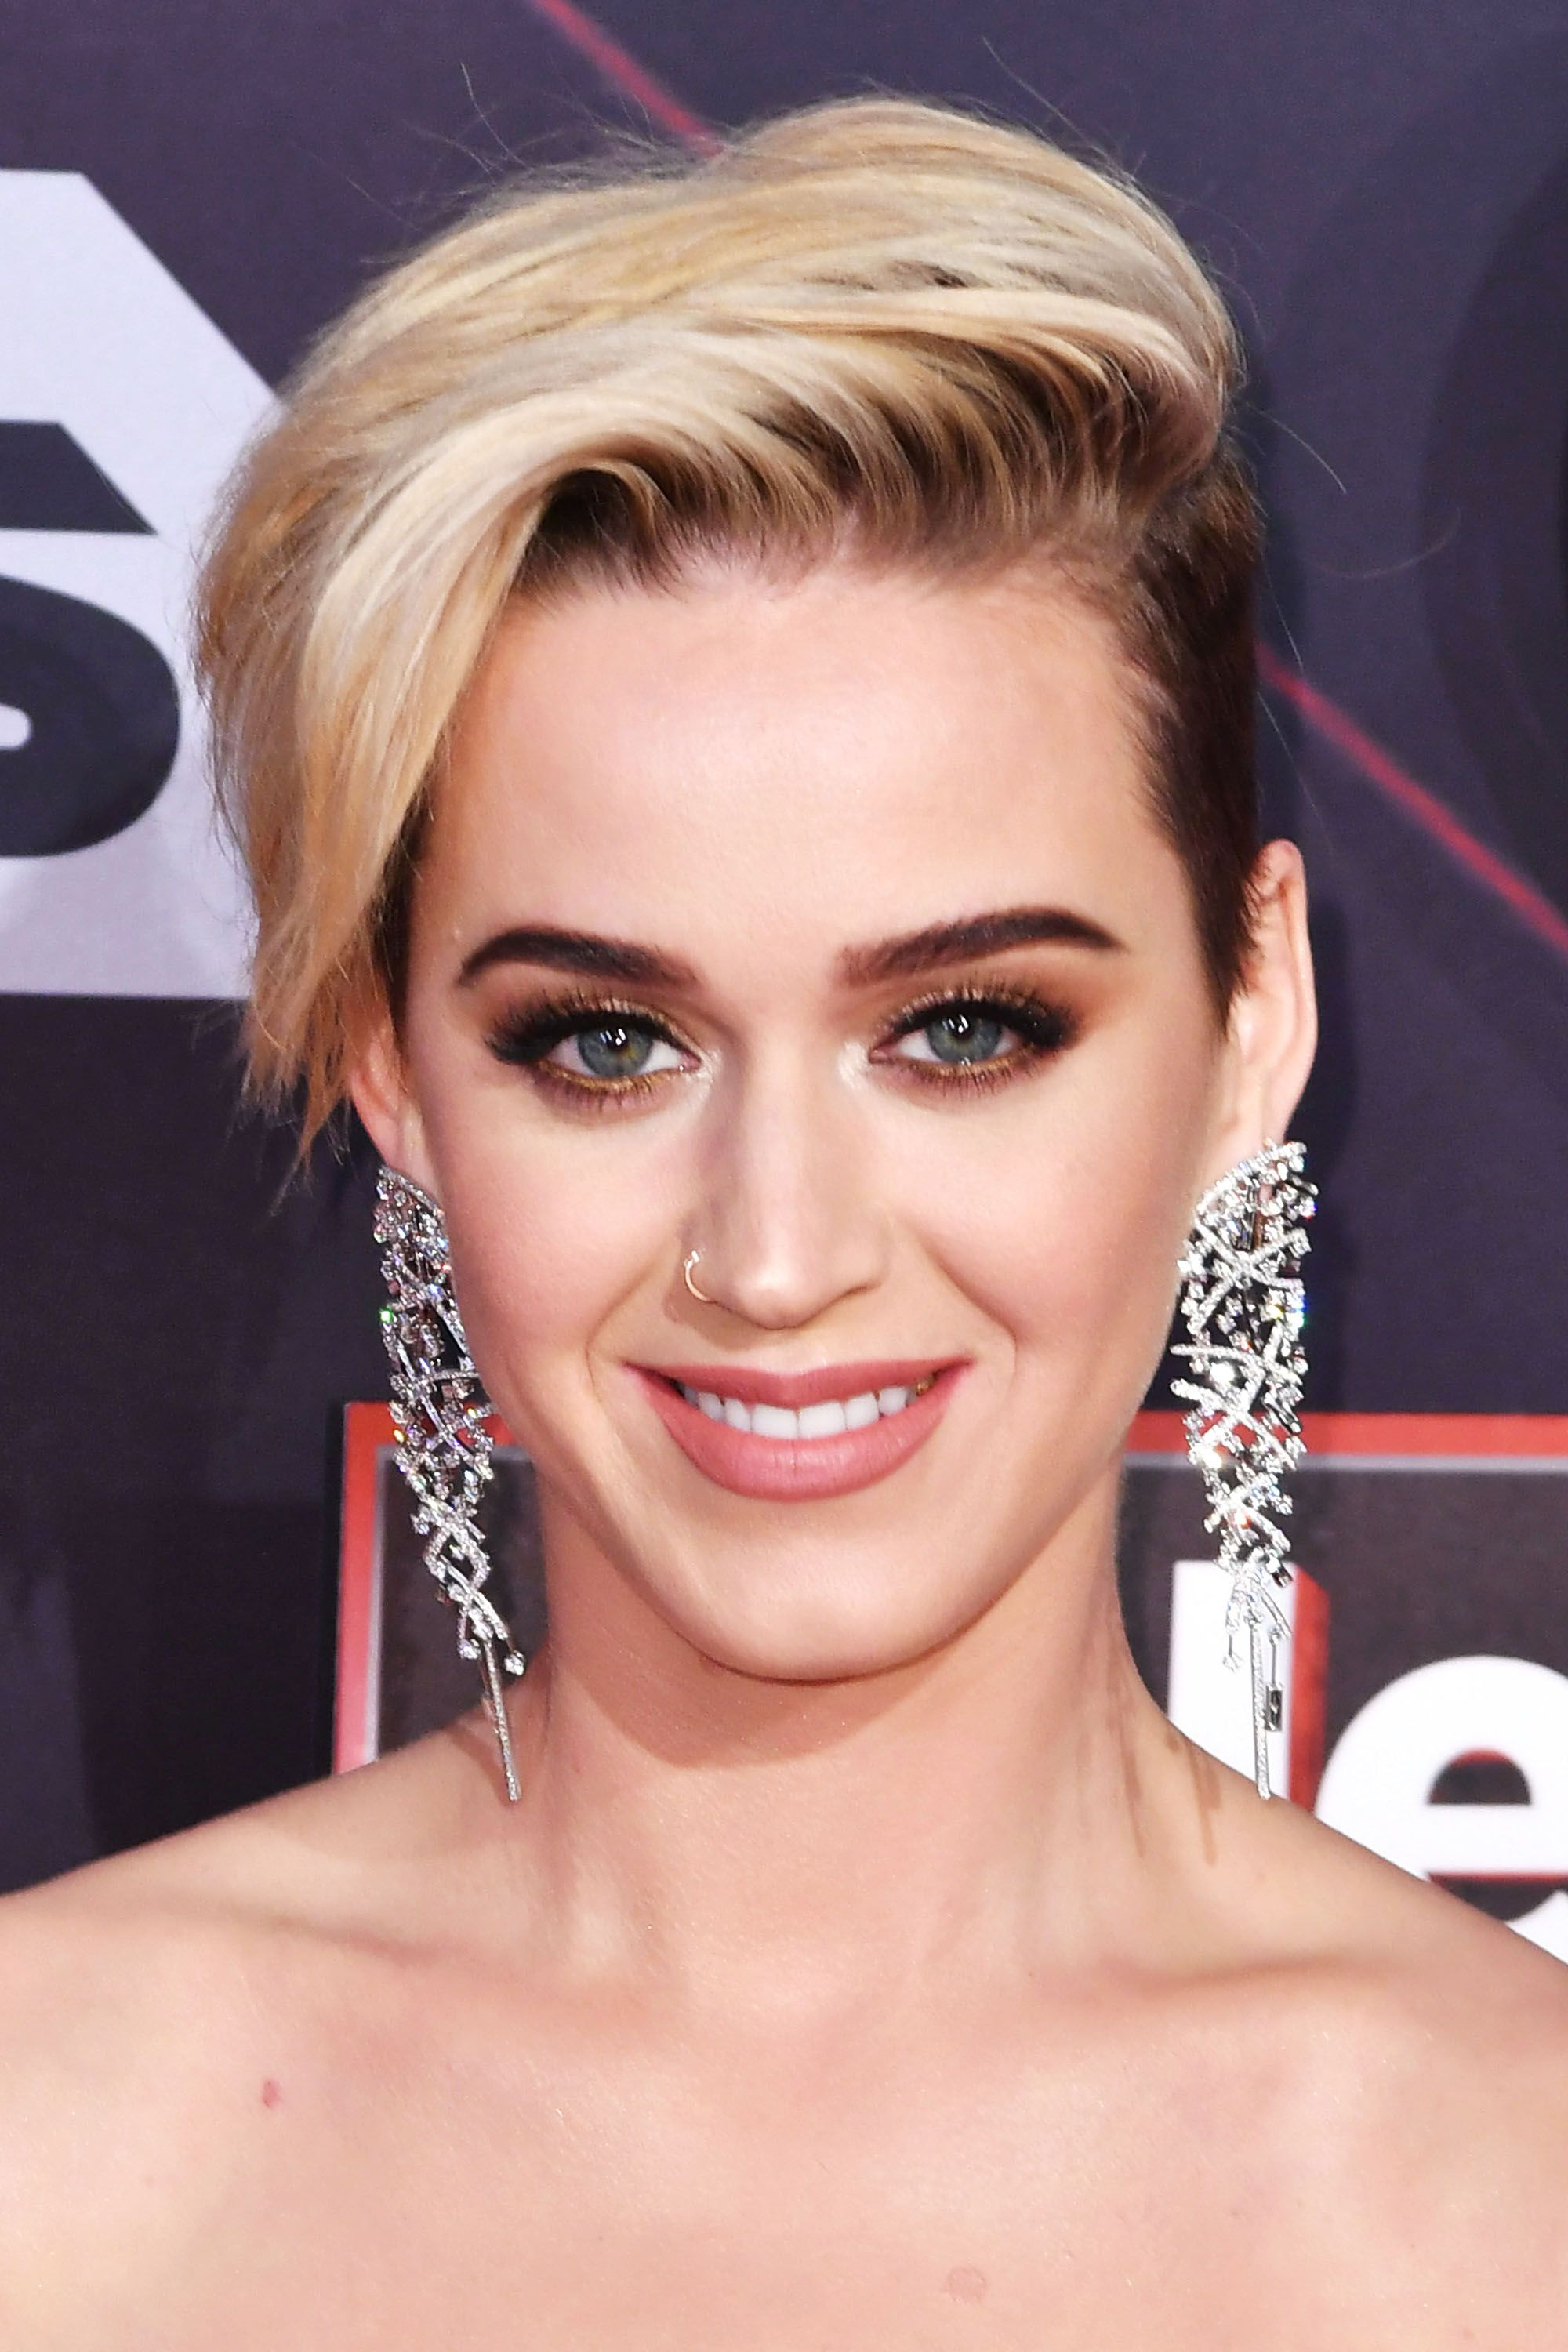 442cae658e 50 Best Pixie Cuts - Iconic Celebrity Pixie Hairstyles